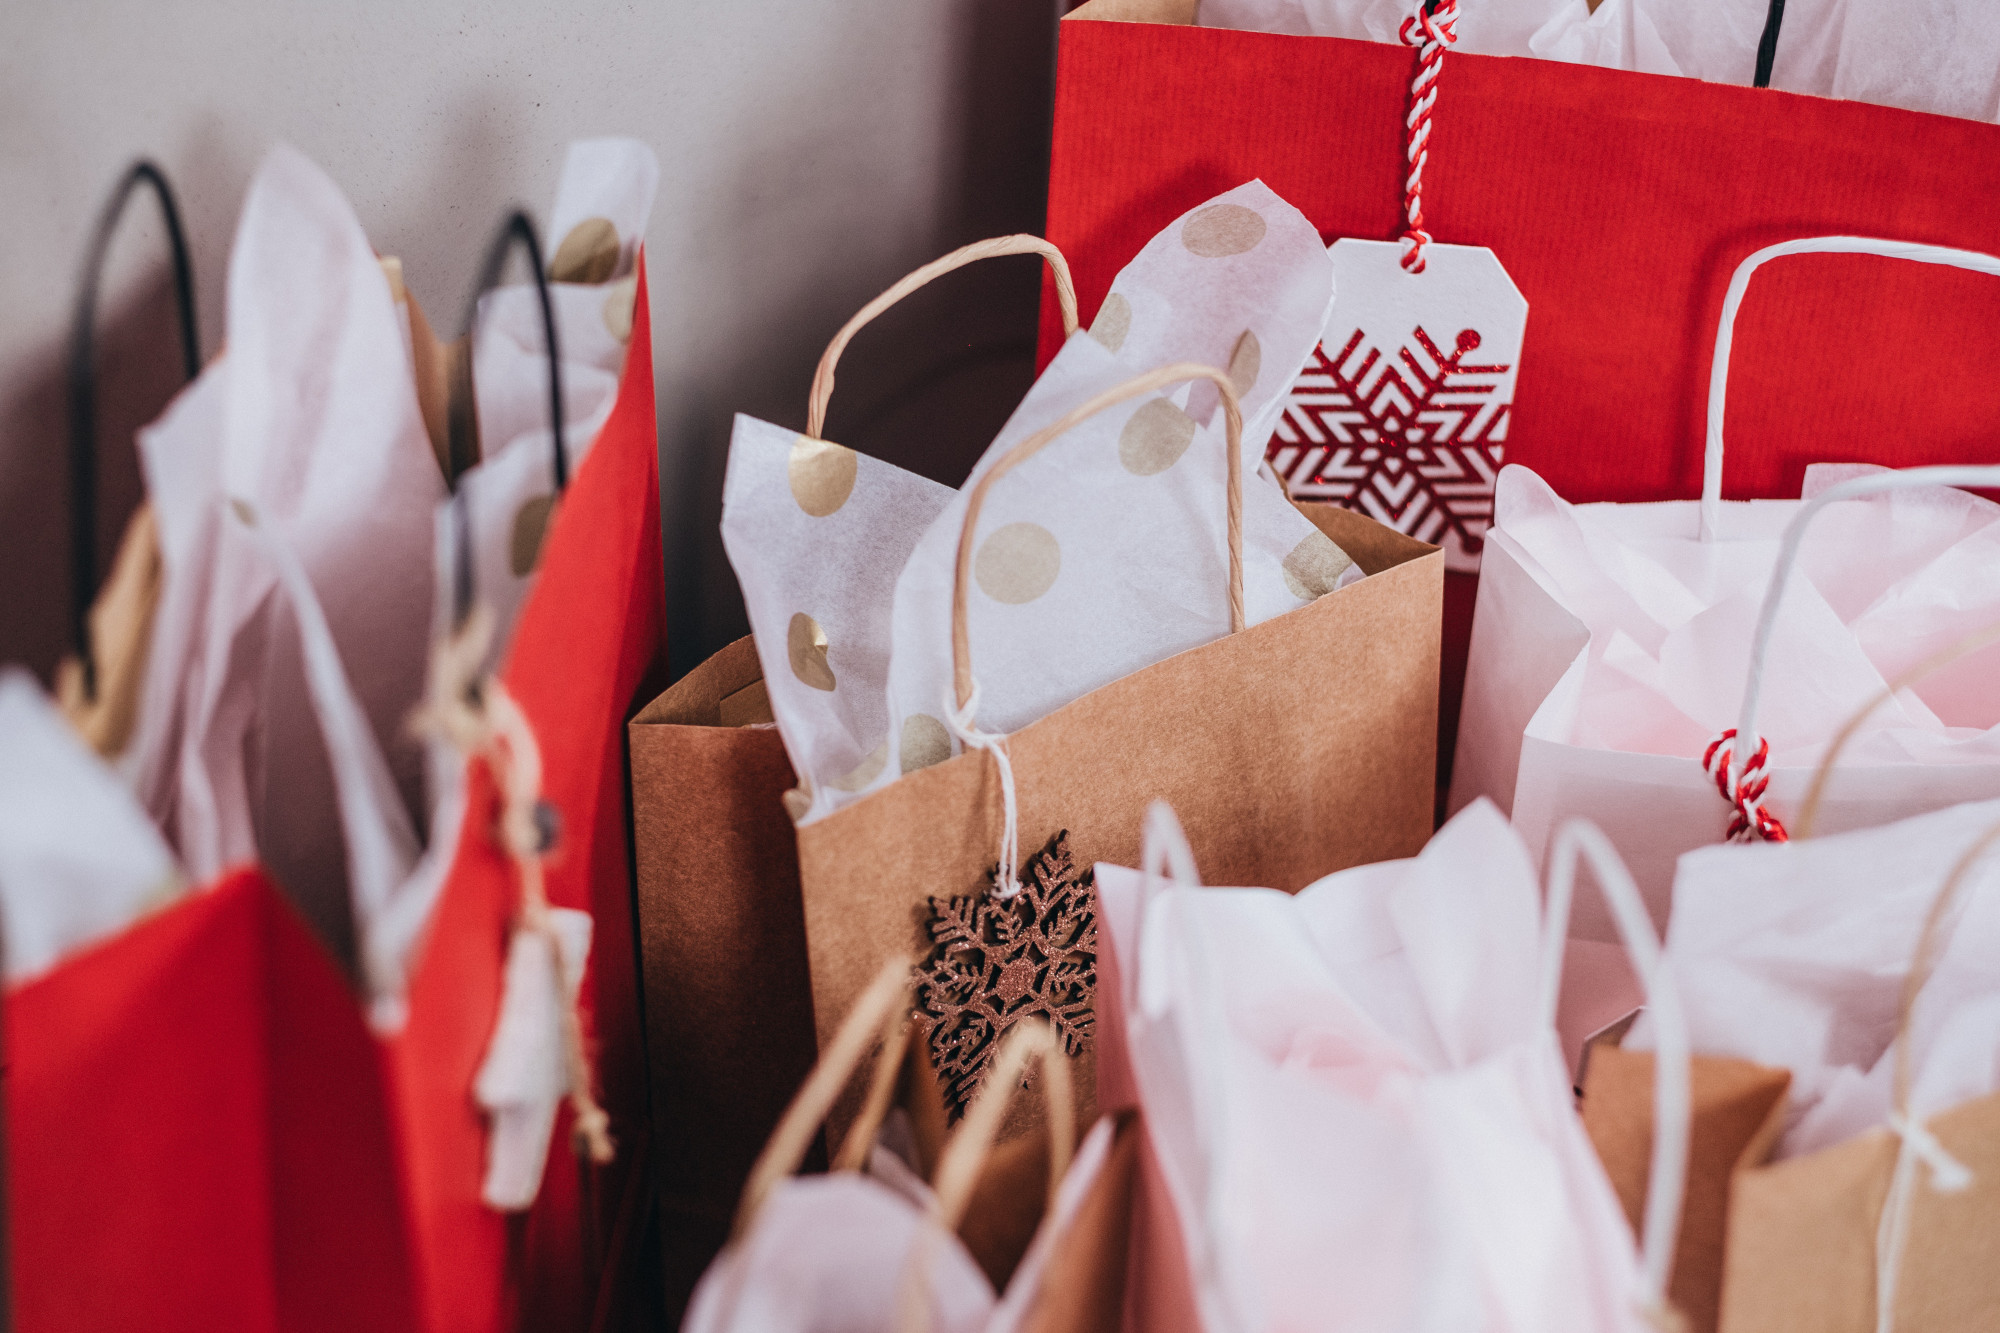 Supply chain backups mean you should do your Christmas, Hanukkah and other holiday shopping now